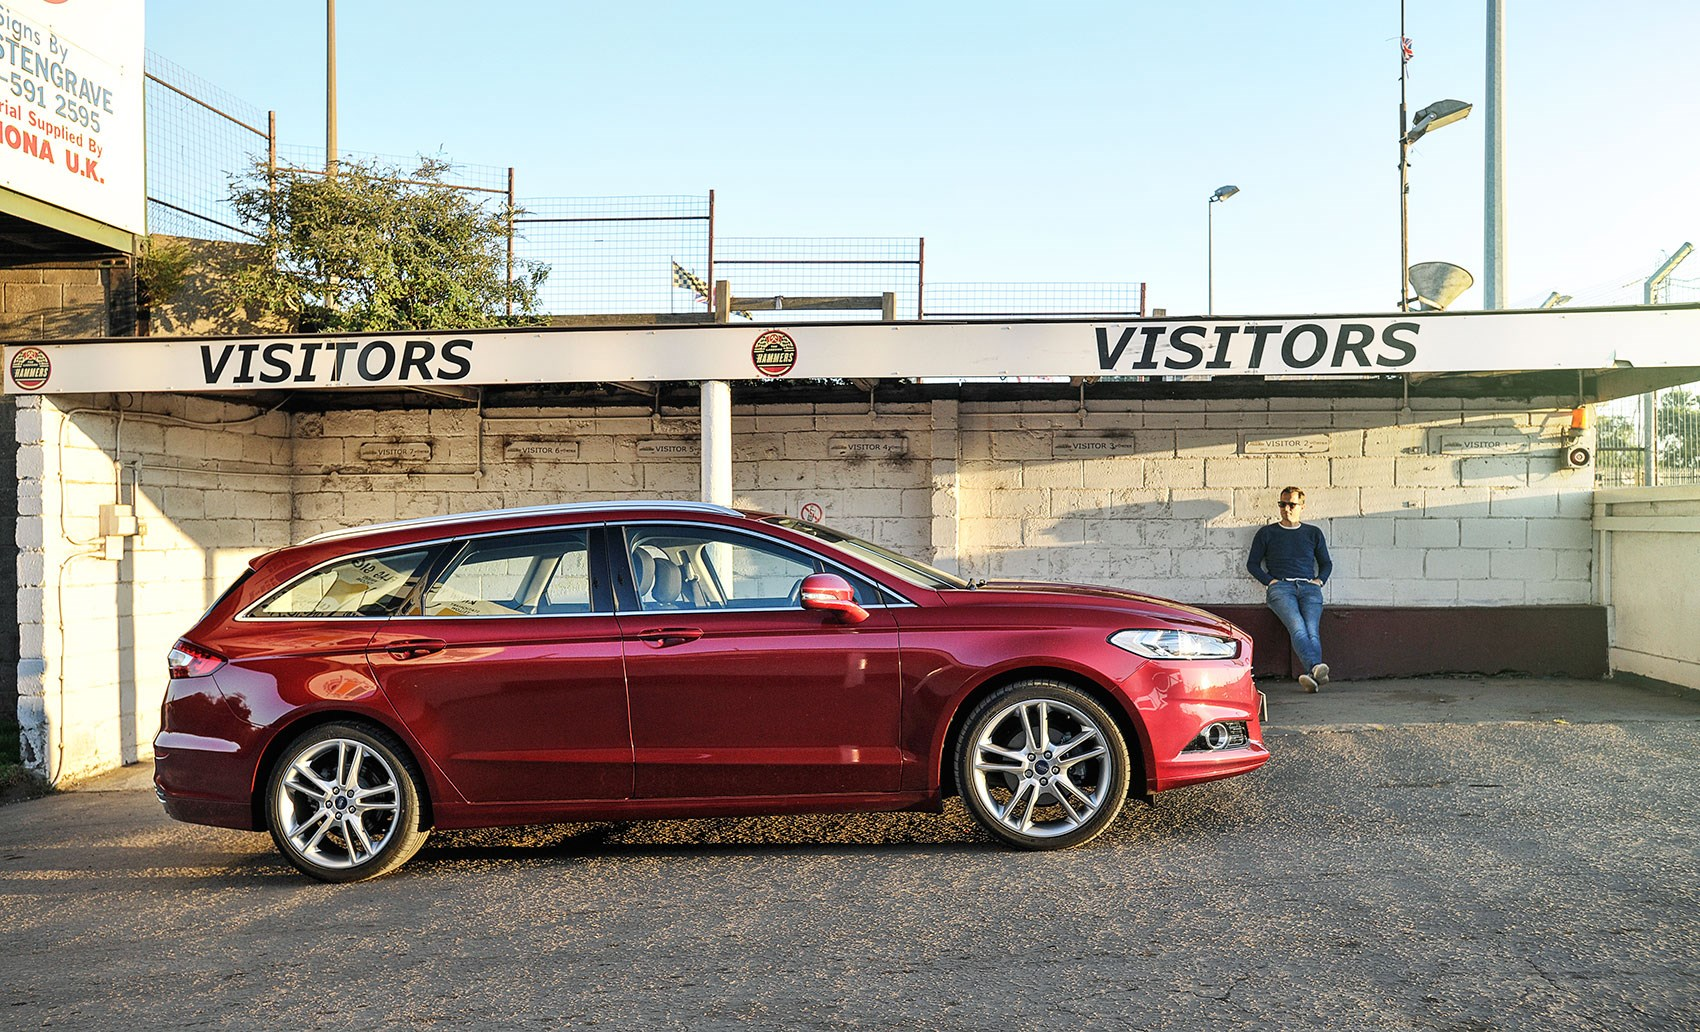 ... ford mondeo cars for sale view all ford mondeo reviews view all ford